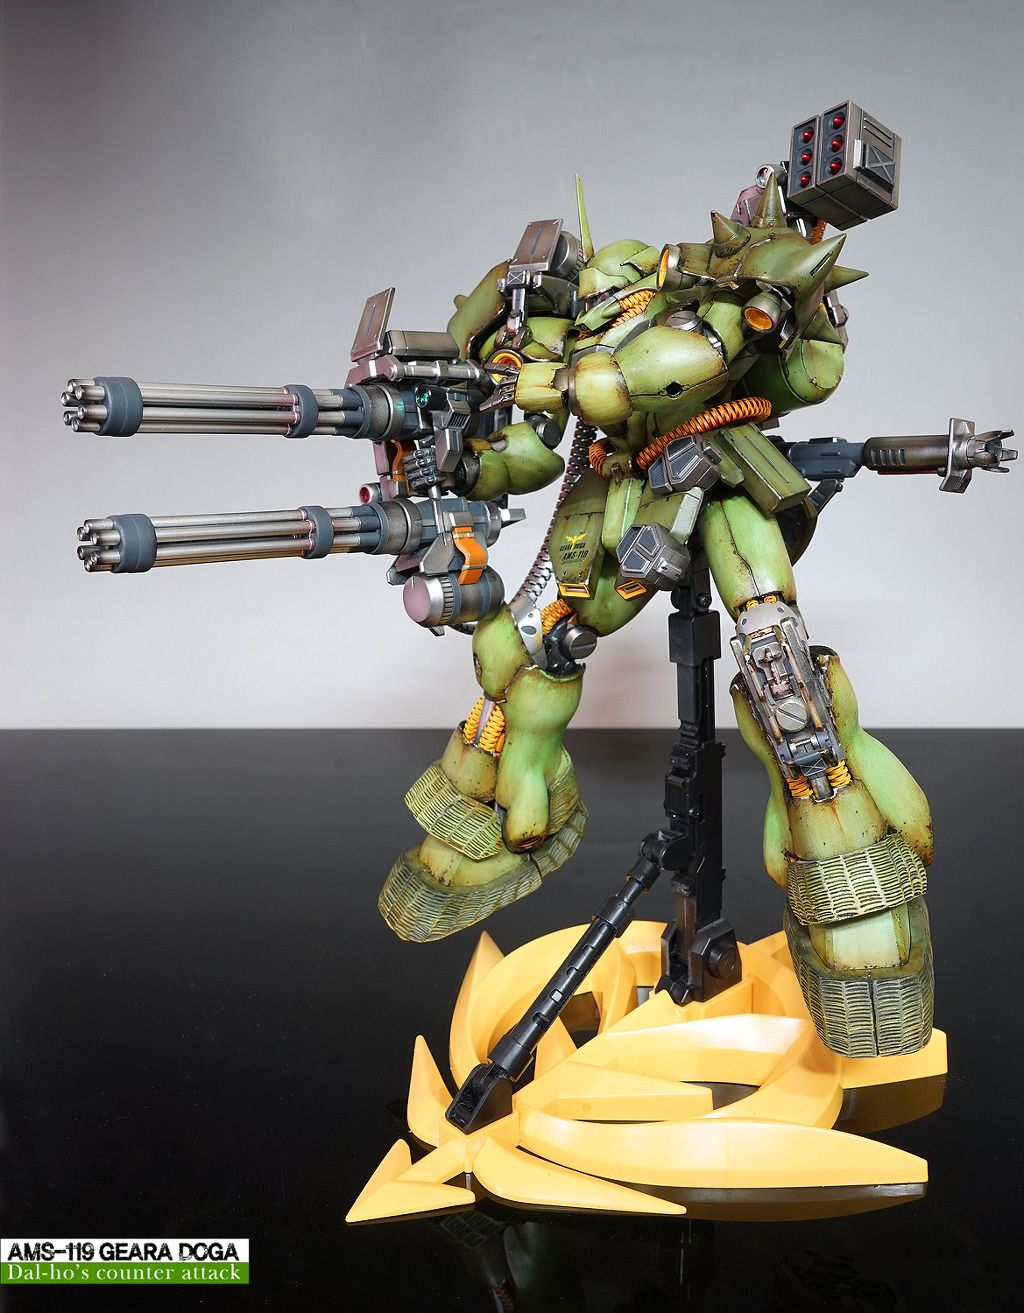 MG 1/100 AMS119 Geara Doga Customized Build ガンダム